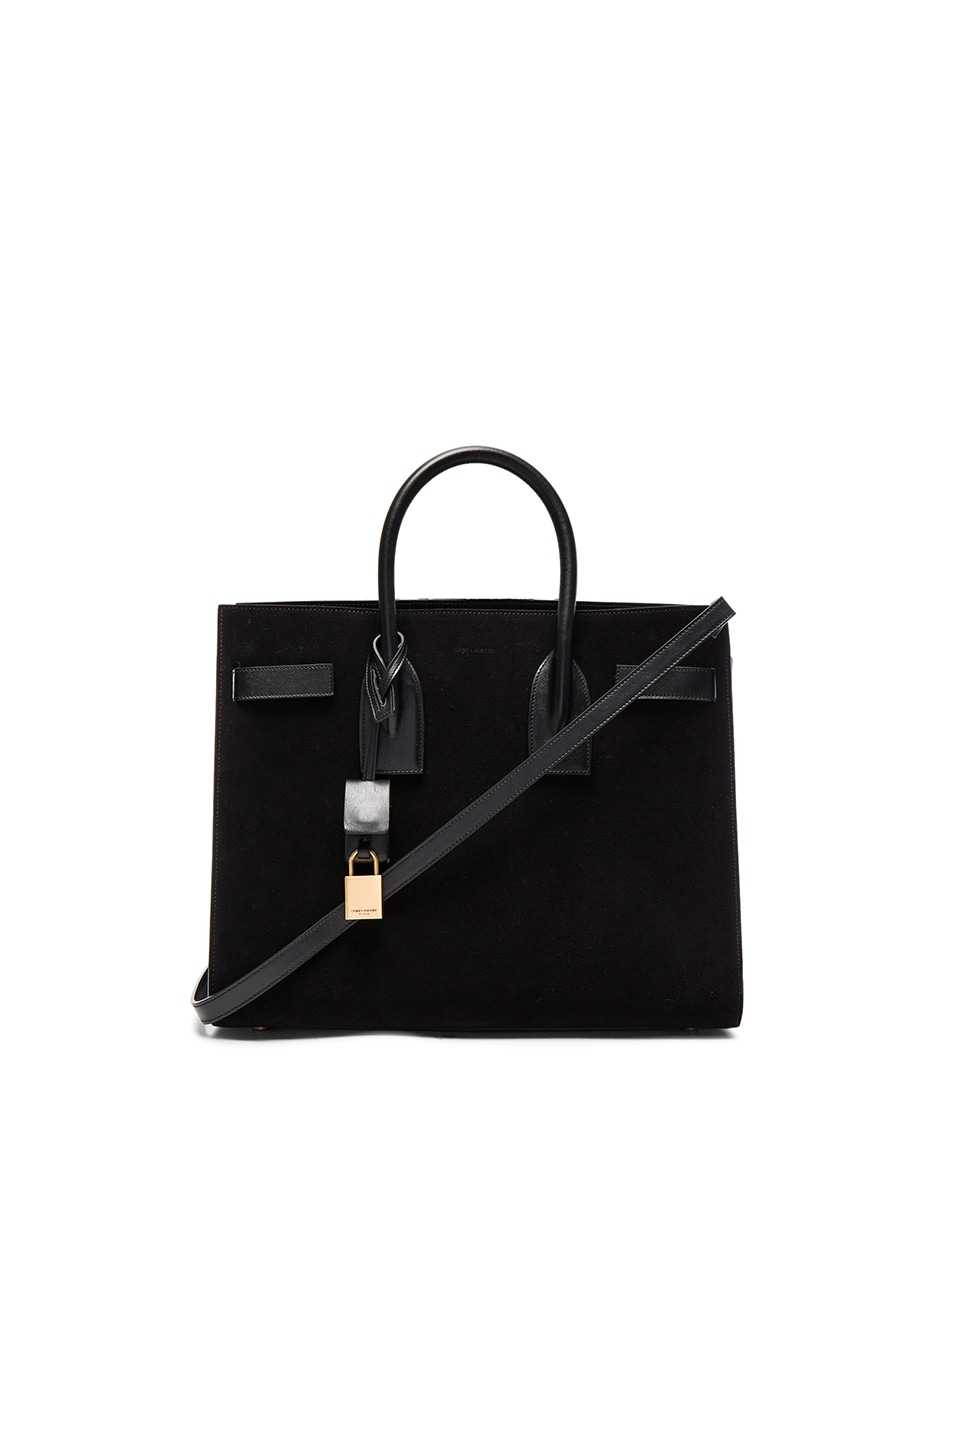 Image 1 of Saint Laurent Small Sac de Jour in Black